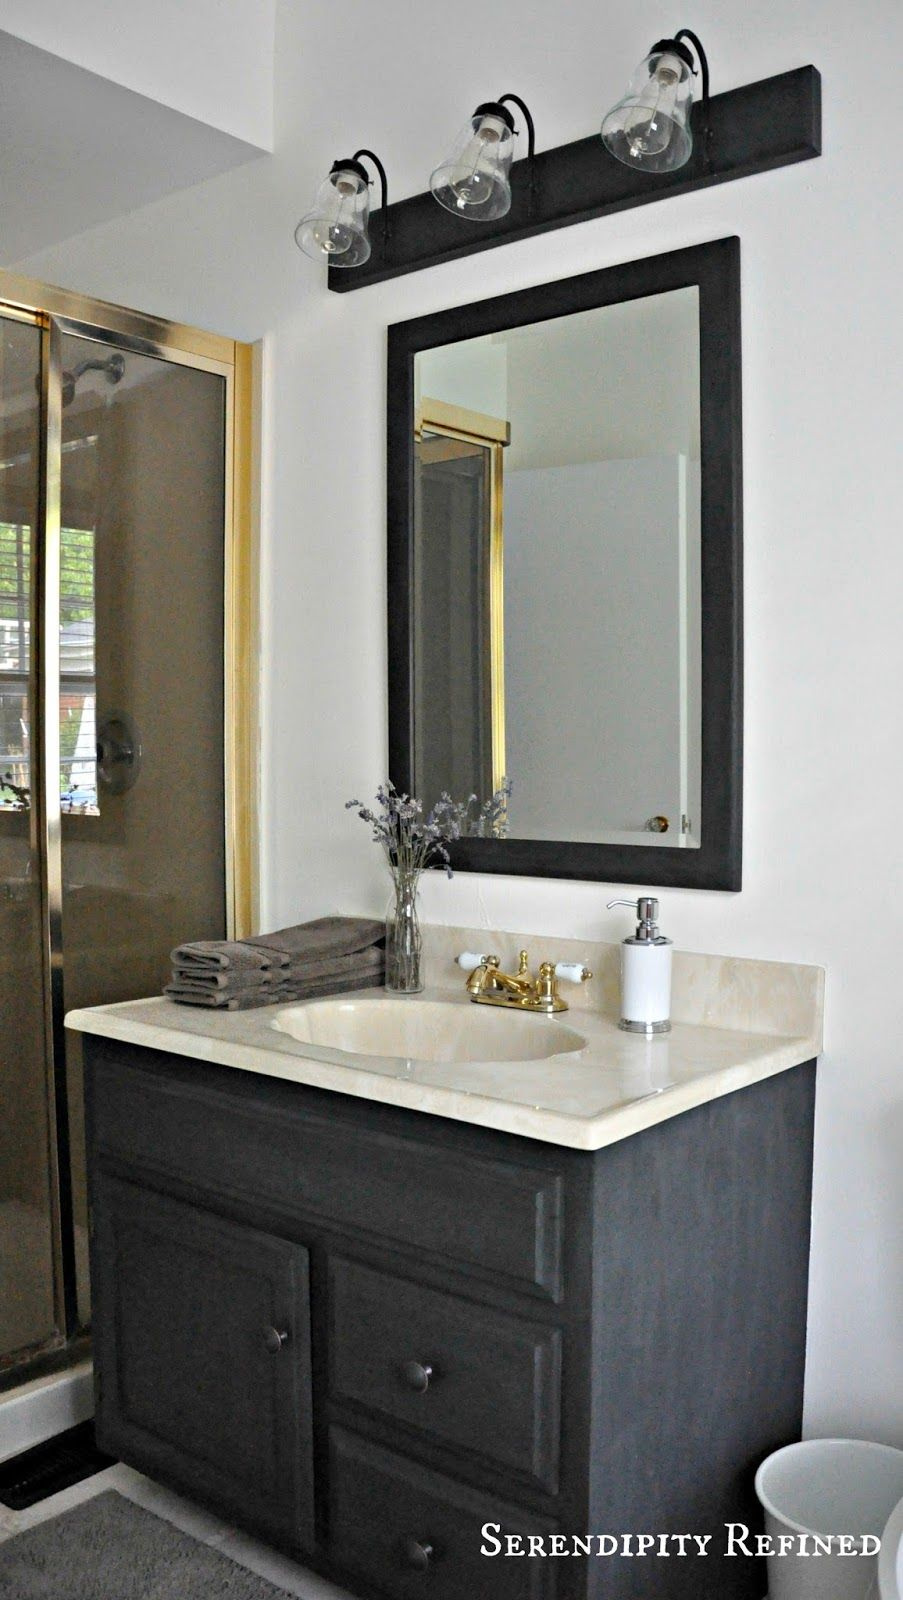 Serendipity Refined How To Update Oak And Br Bathroom Fixtures